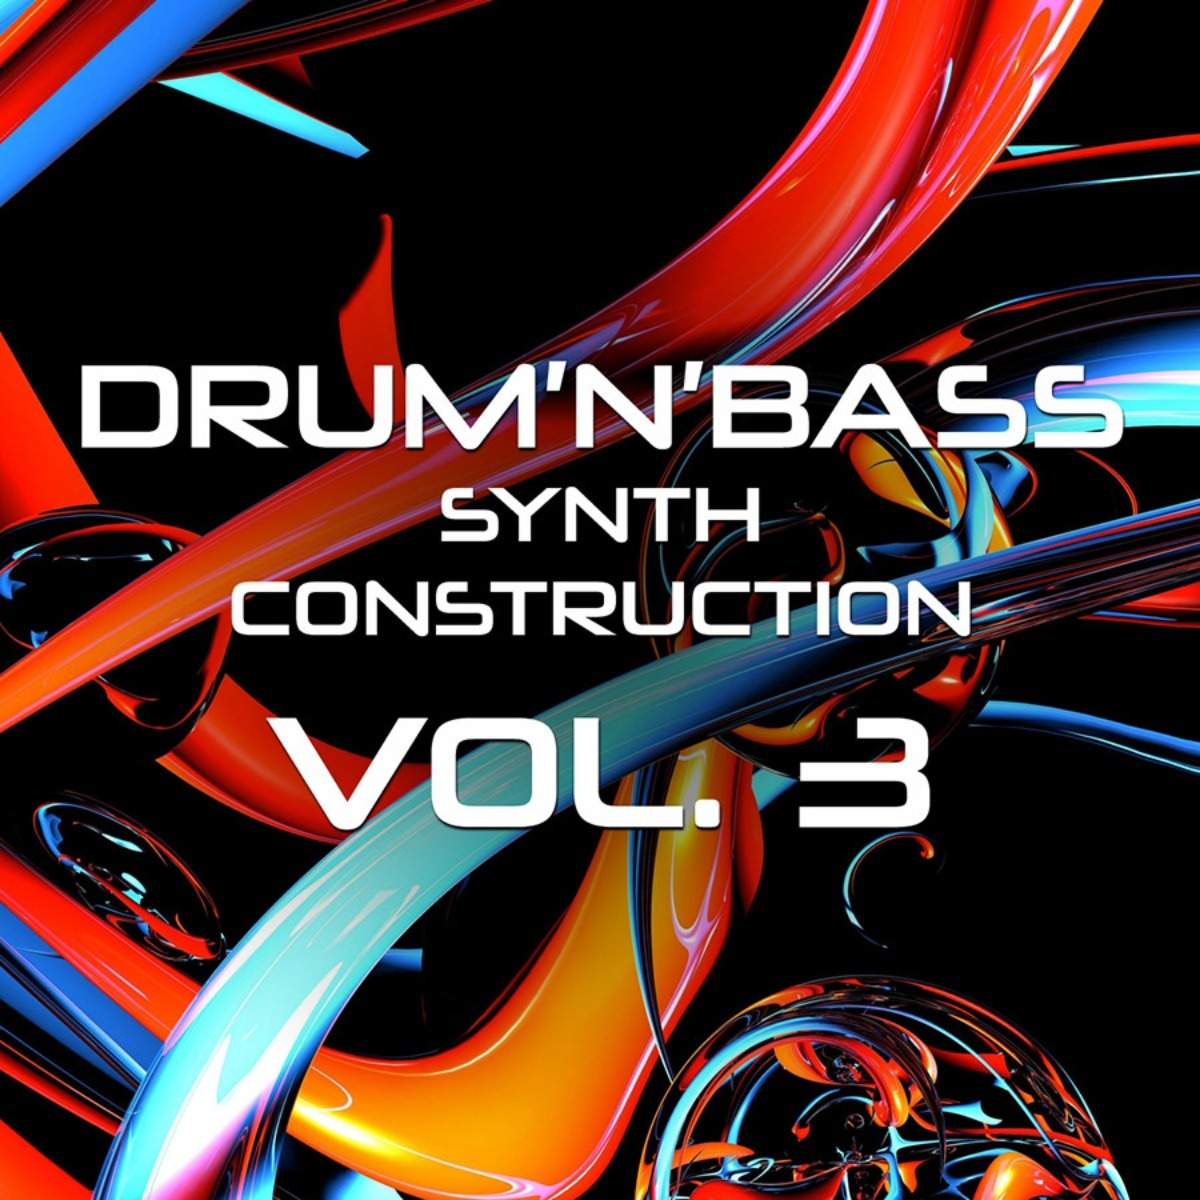 DnB Synth Construction Vol 3